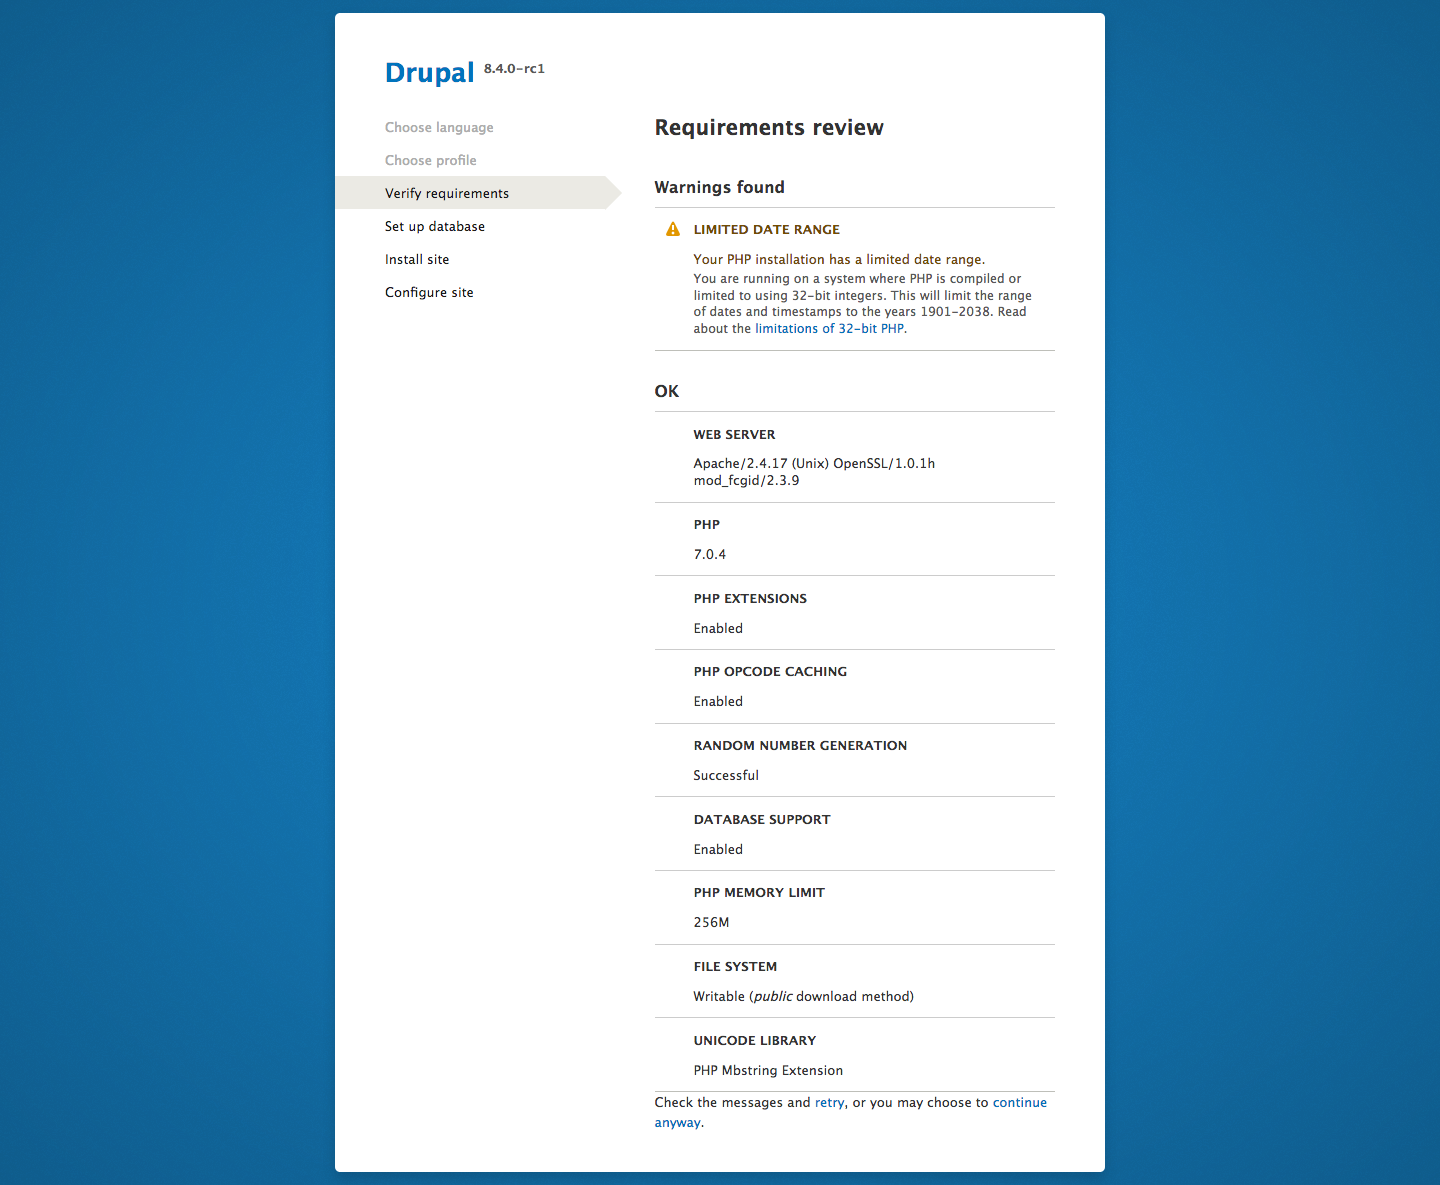 Requirements review for Drupal 8.4.0-rc1